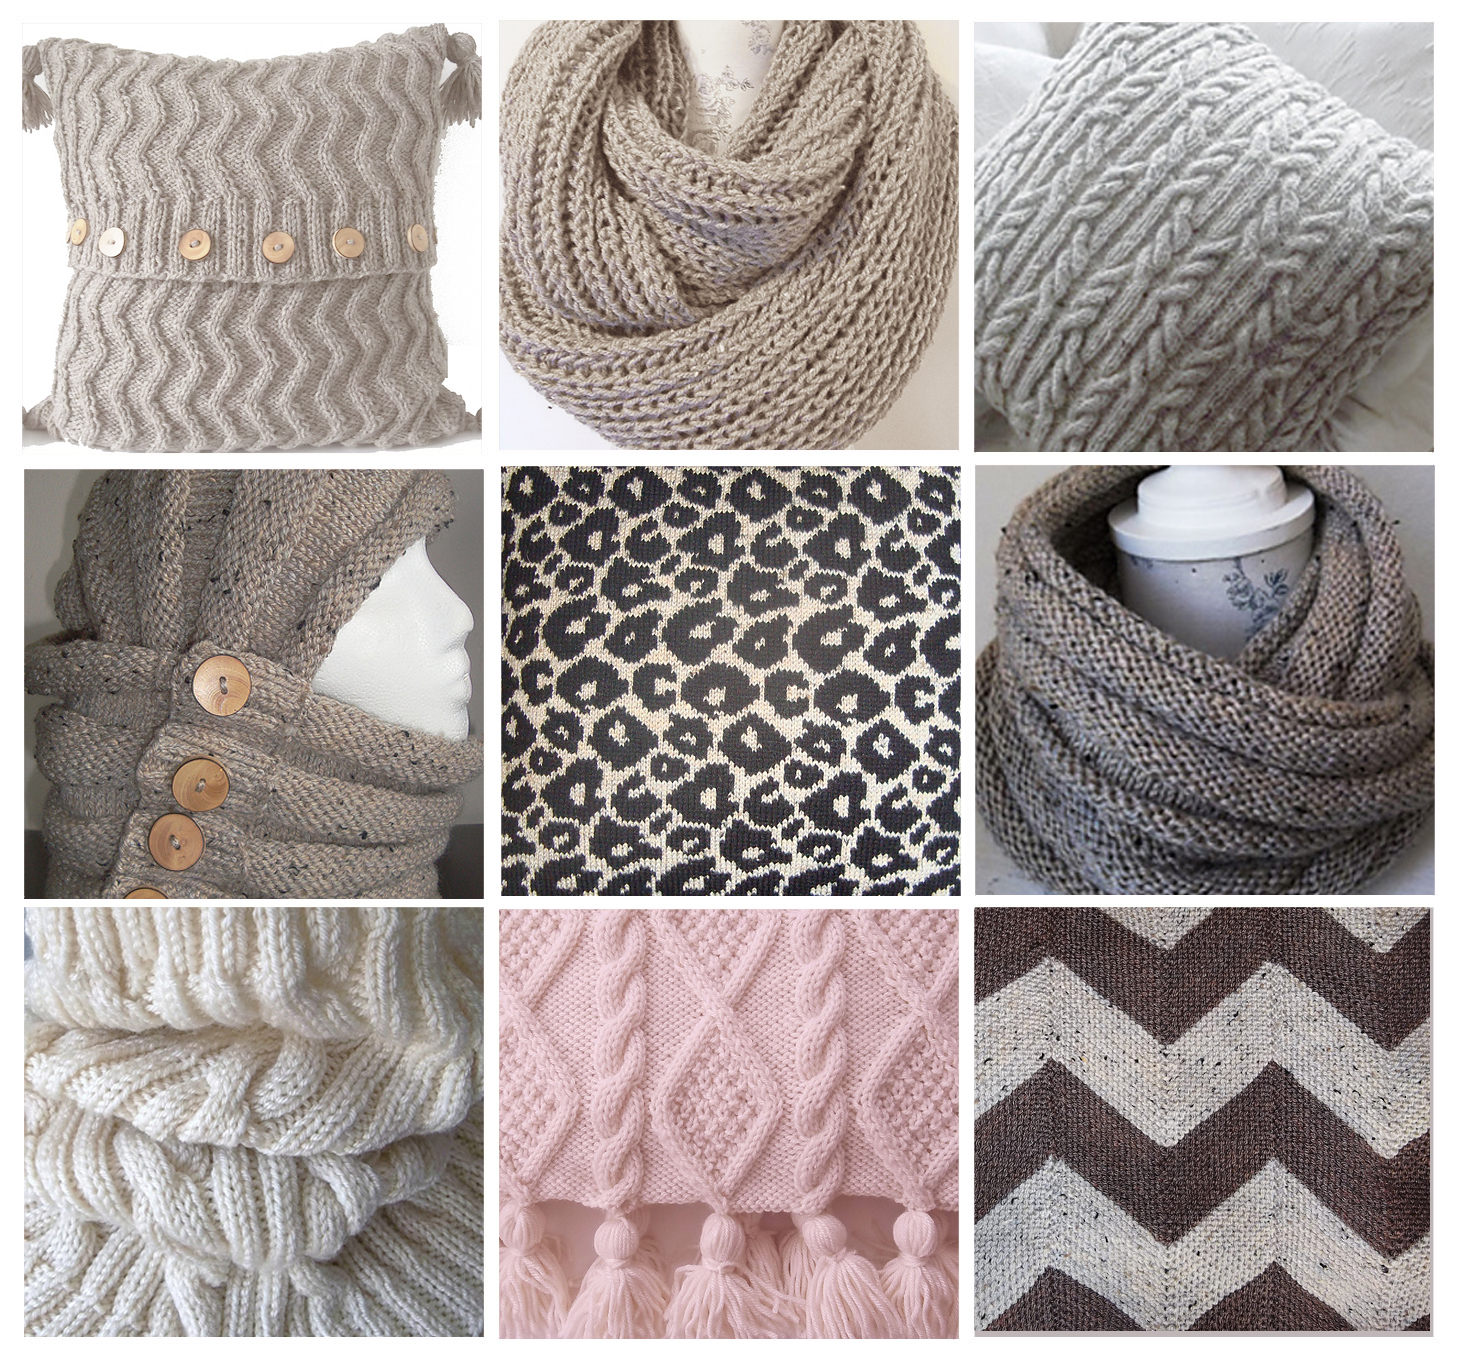 Knitting Patterns For Cushions And Throws : Knitting Patterns. Trending Cushions, Cowls and Throws.